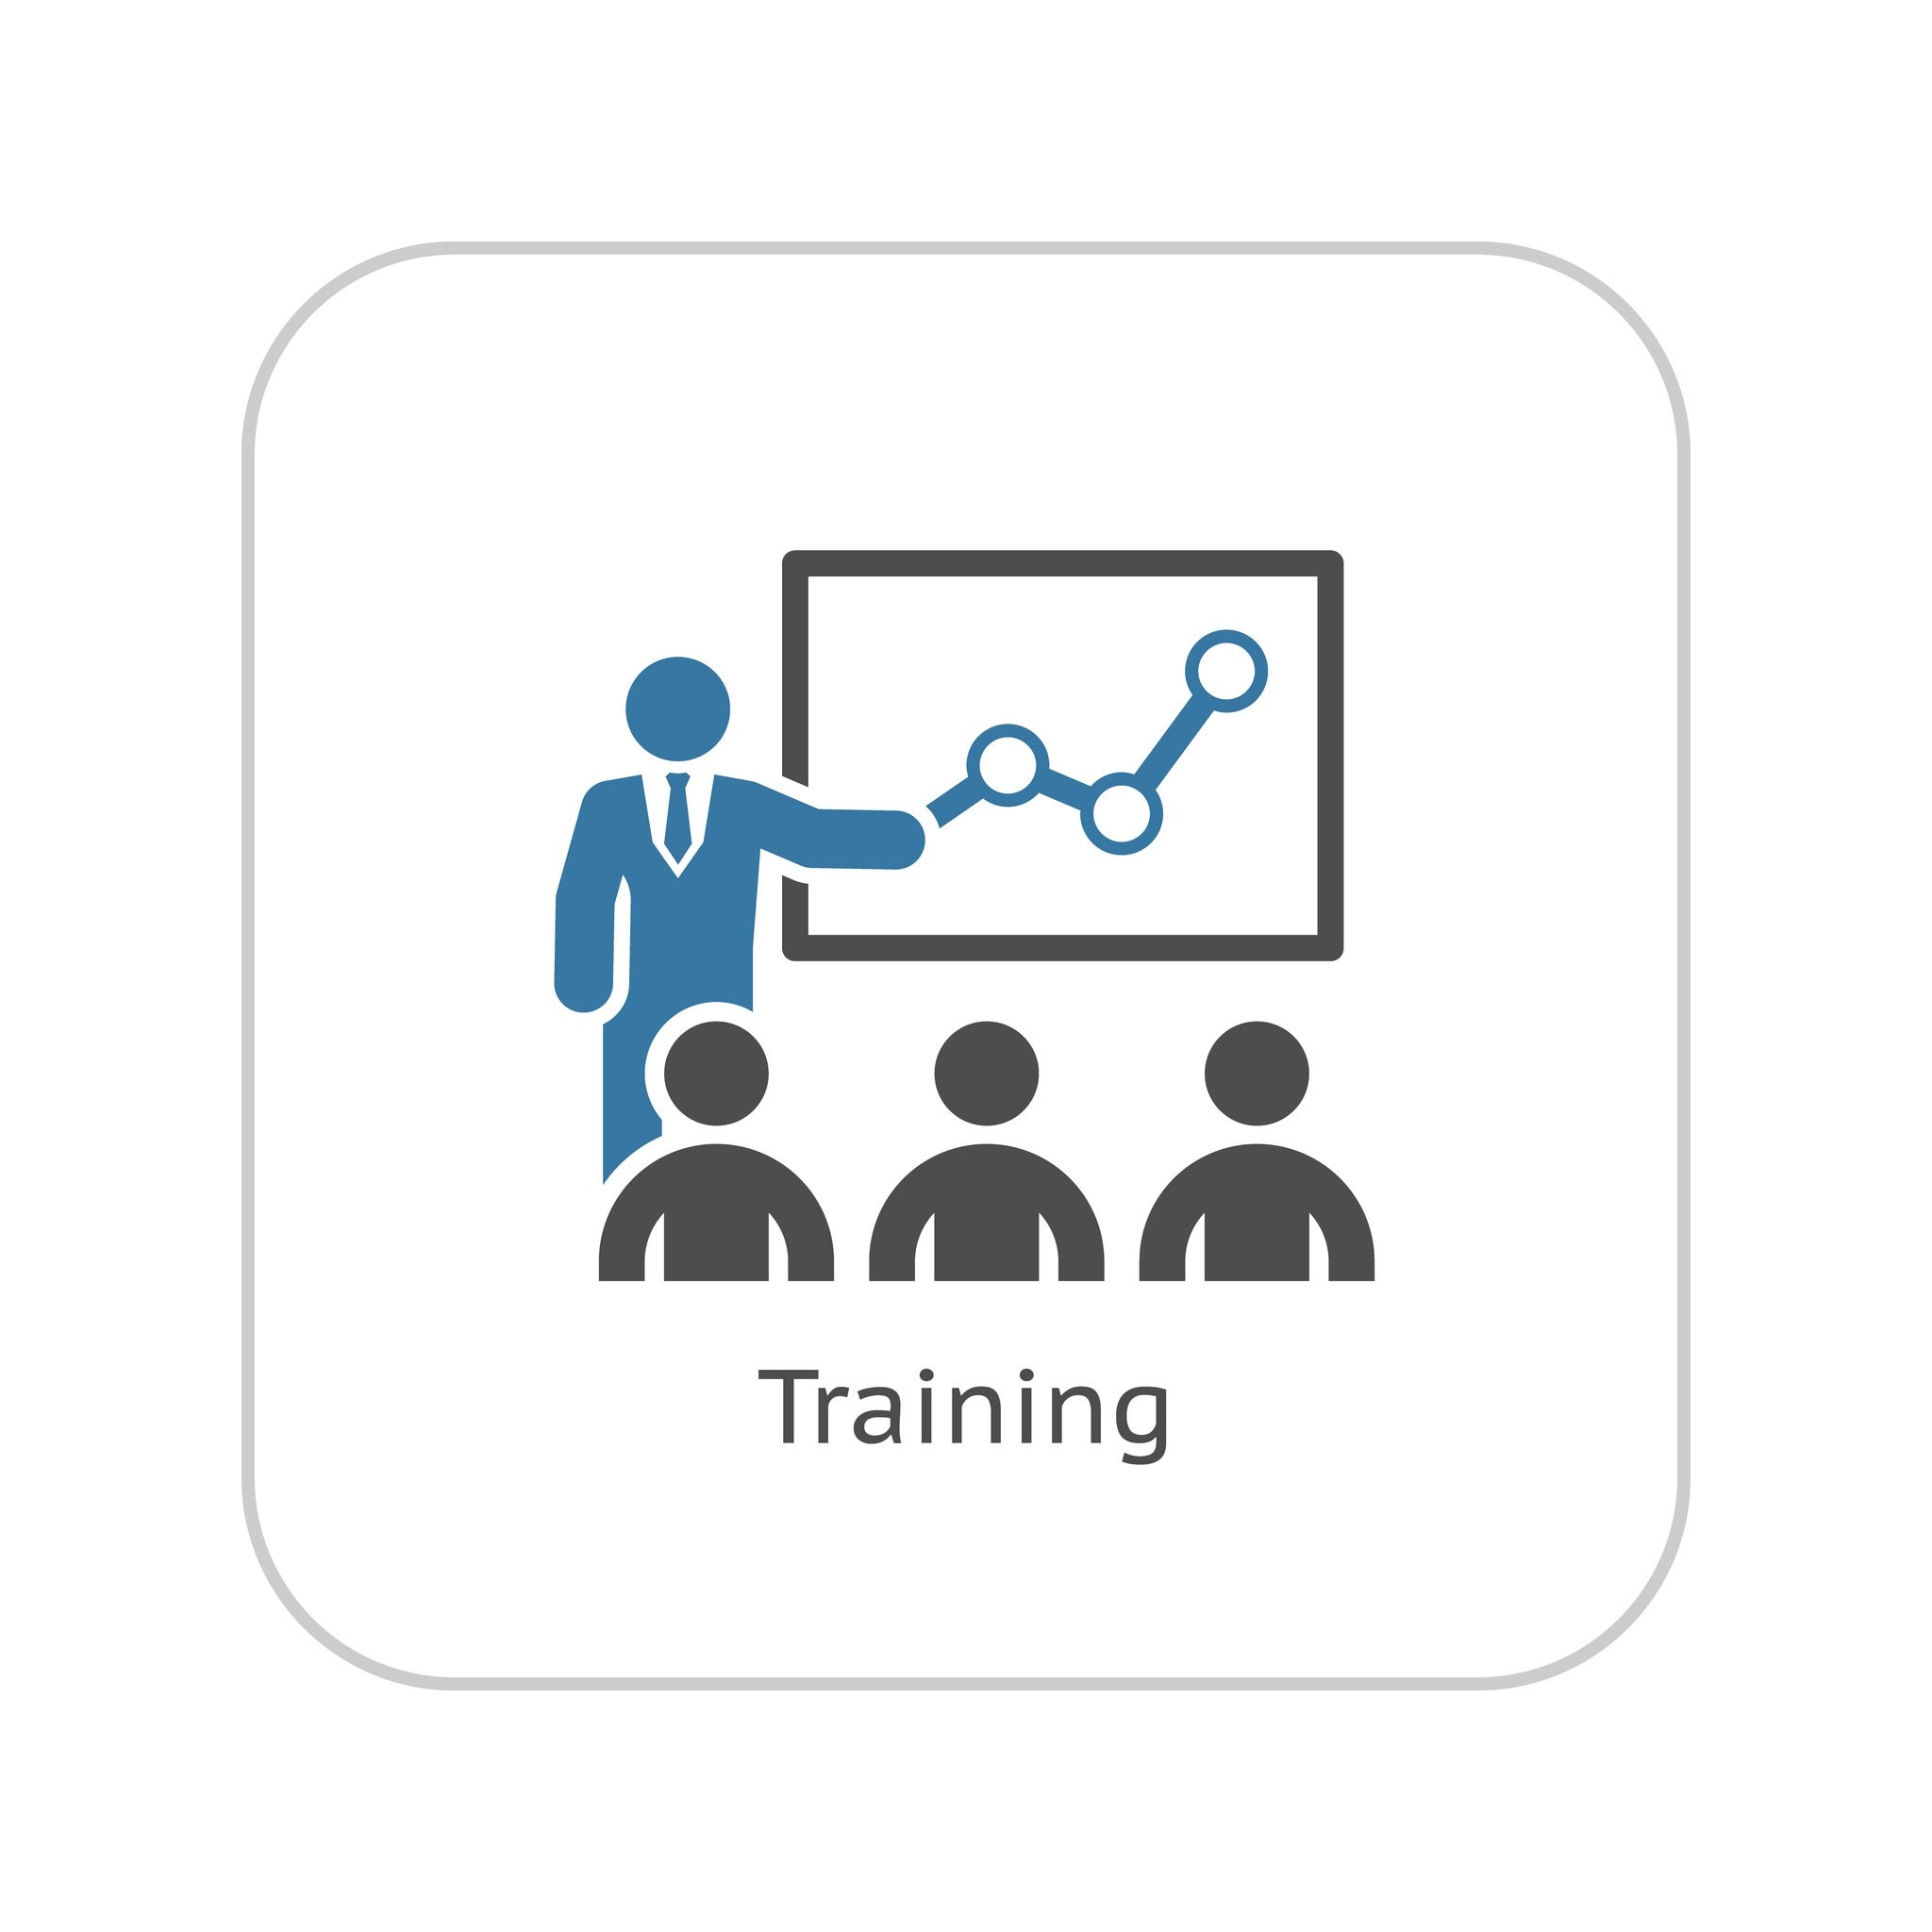 Do your employees know how to use the tools you're asking them to? Sure, they're using them, but are they using them efficiently? Imagine what you could do with a team that was well trained on the technologies and systems they need to do their work. Why investing in staff training pays off.